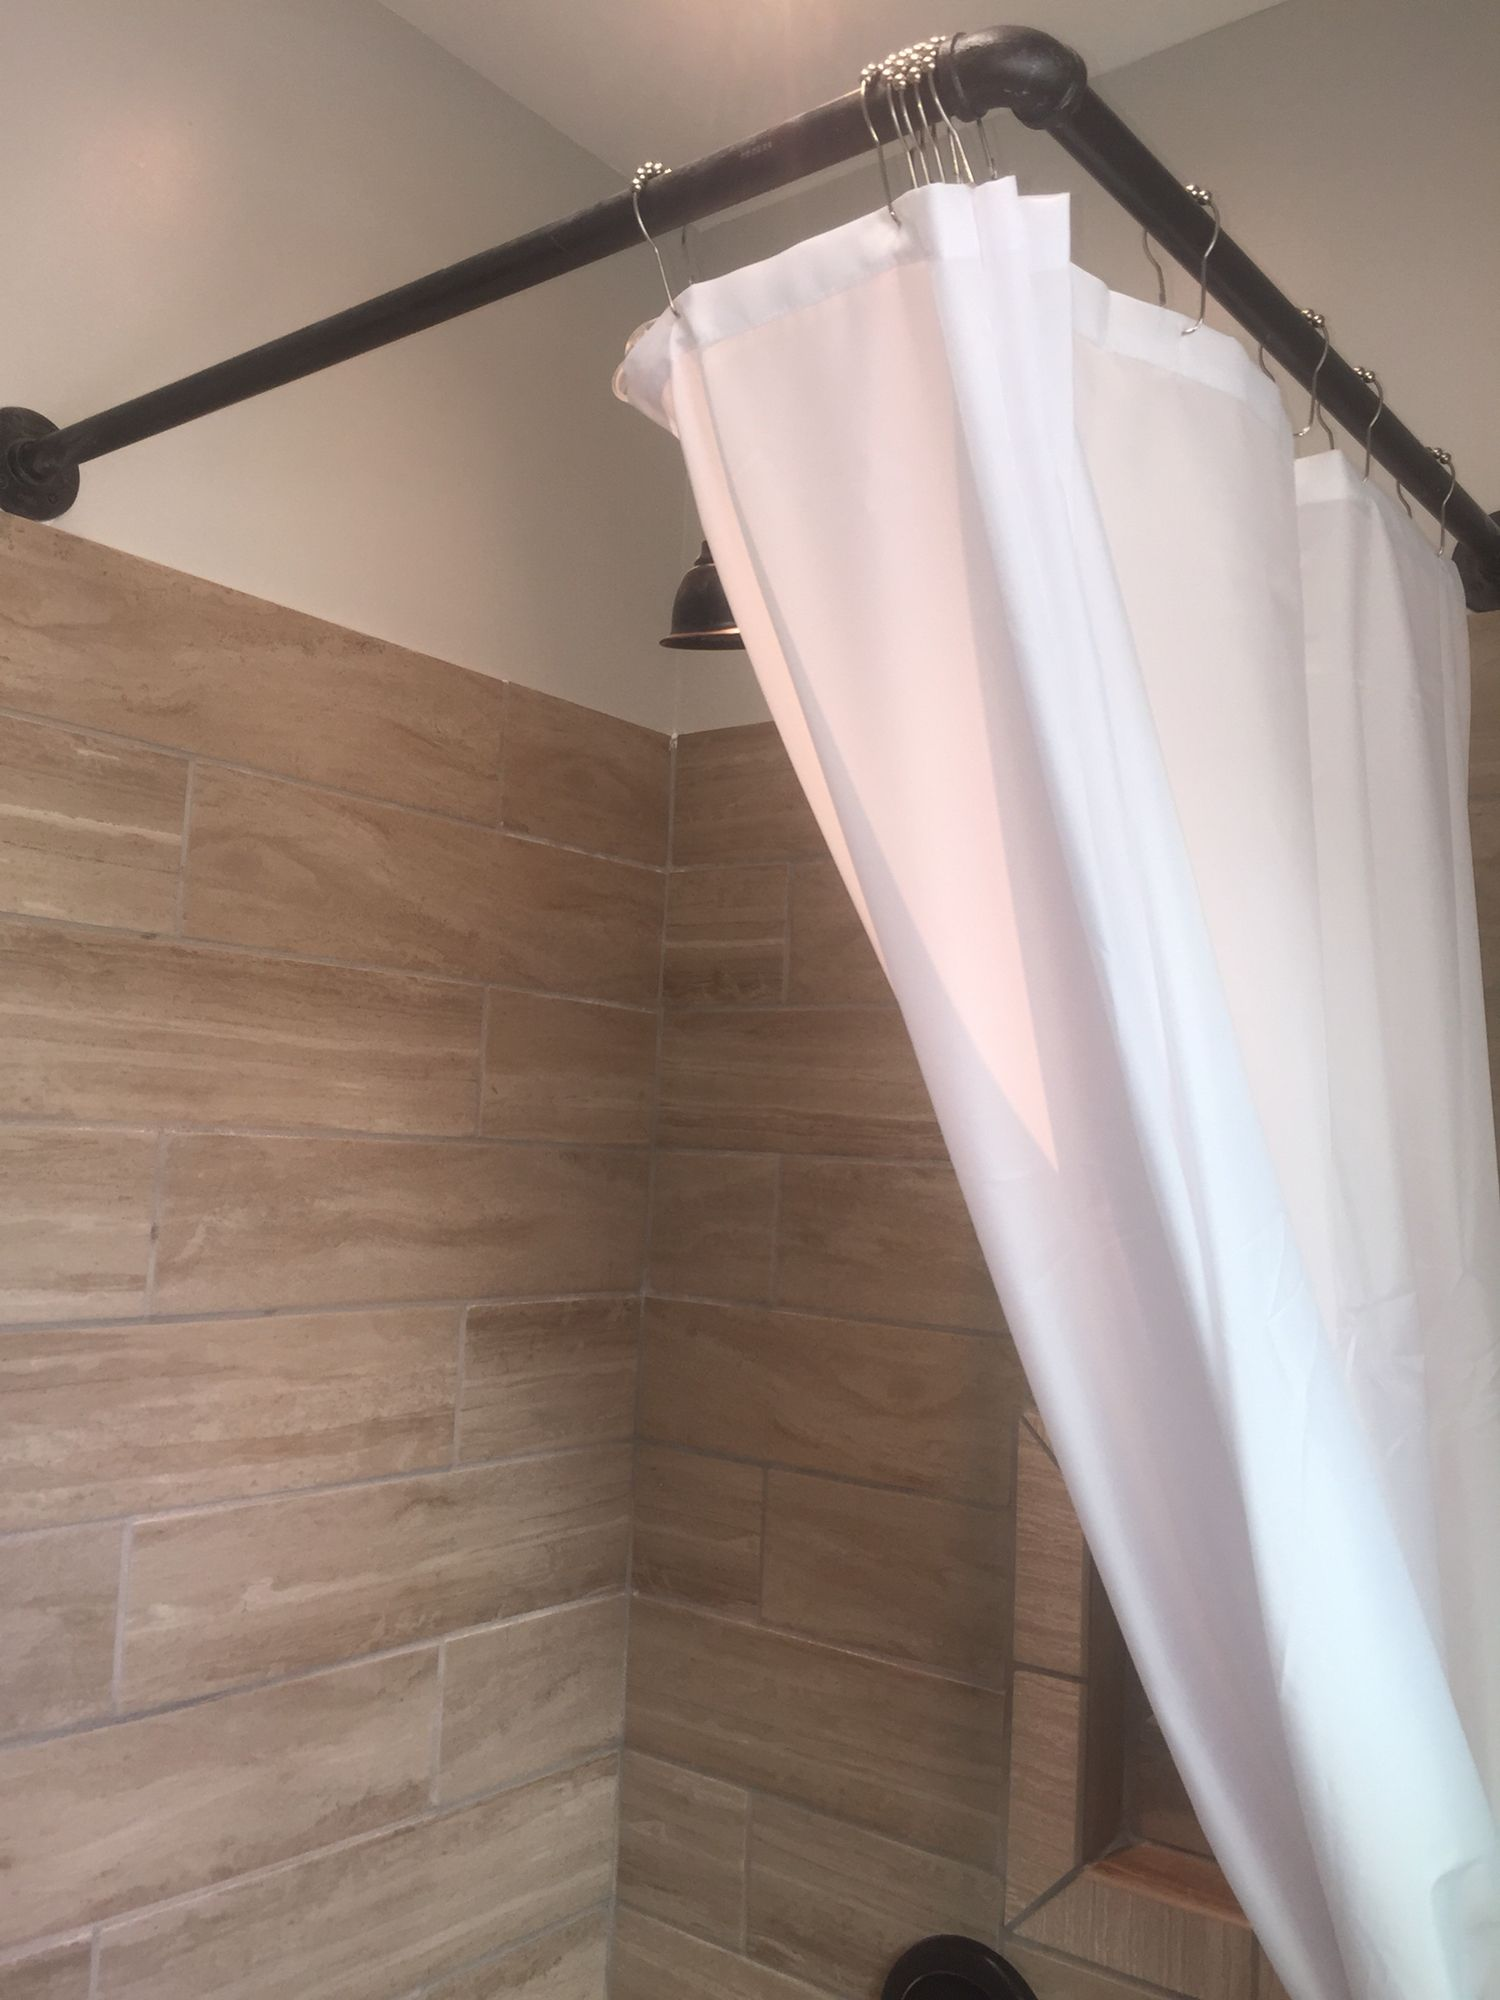 Diy Shower Curtain Rod Corner Shower Curtain Rod Diy Shower